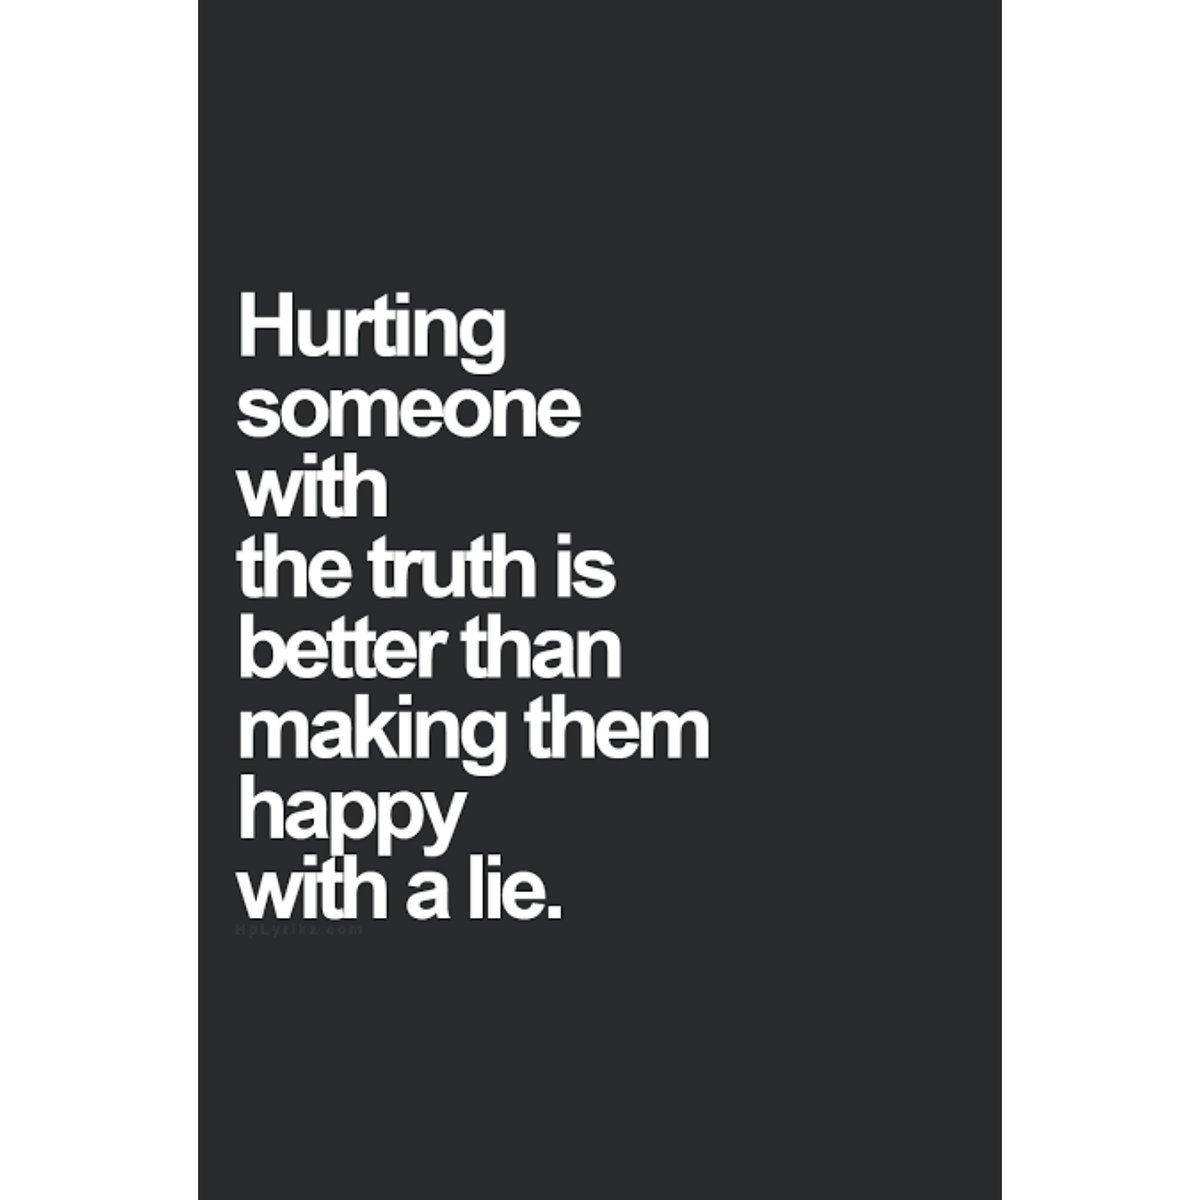 You are currently viewing #honesty #love #truth #trust #integrity #life #loyalty #quotes #peace #respect #